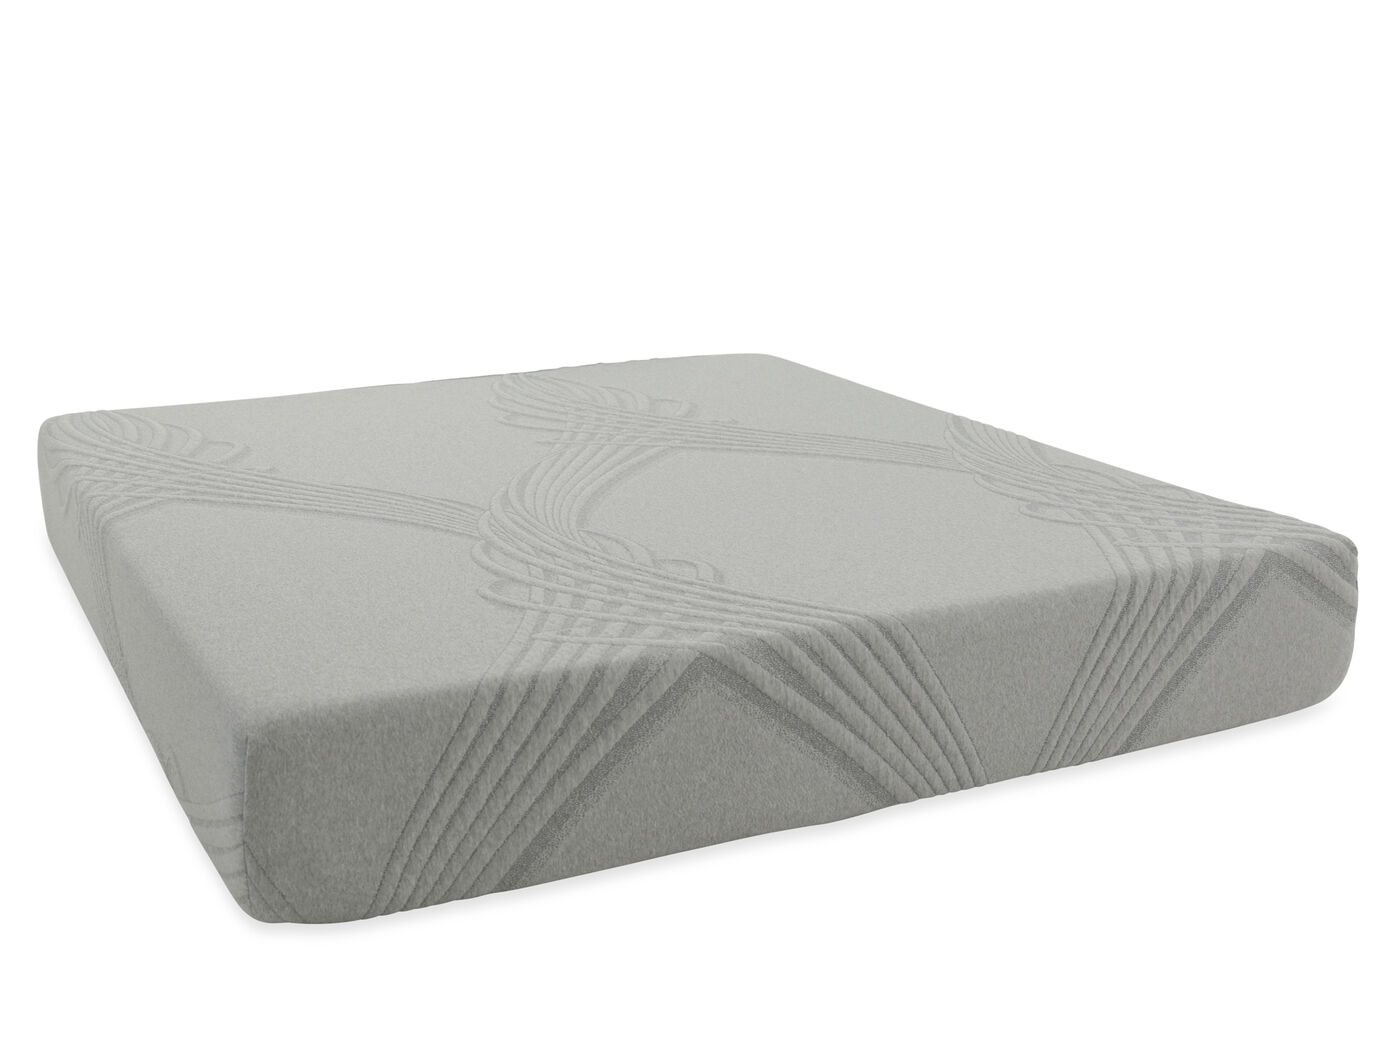 ecomfort organic mattresses mathis brothers